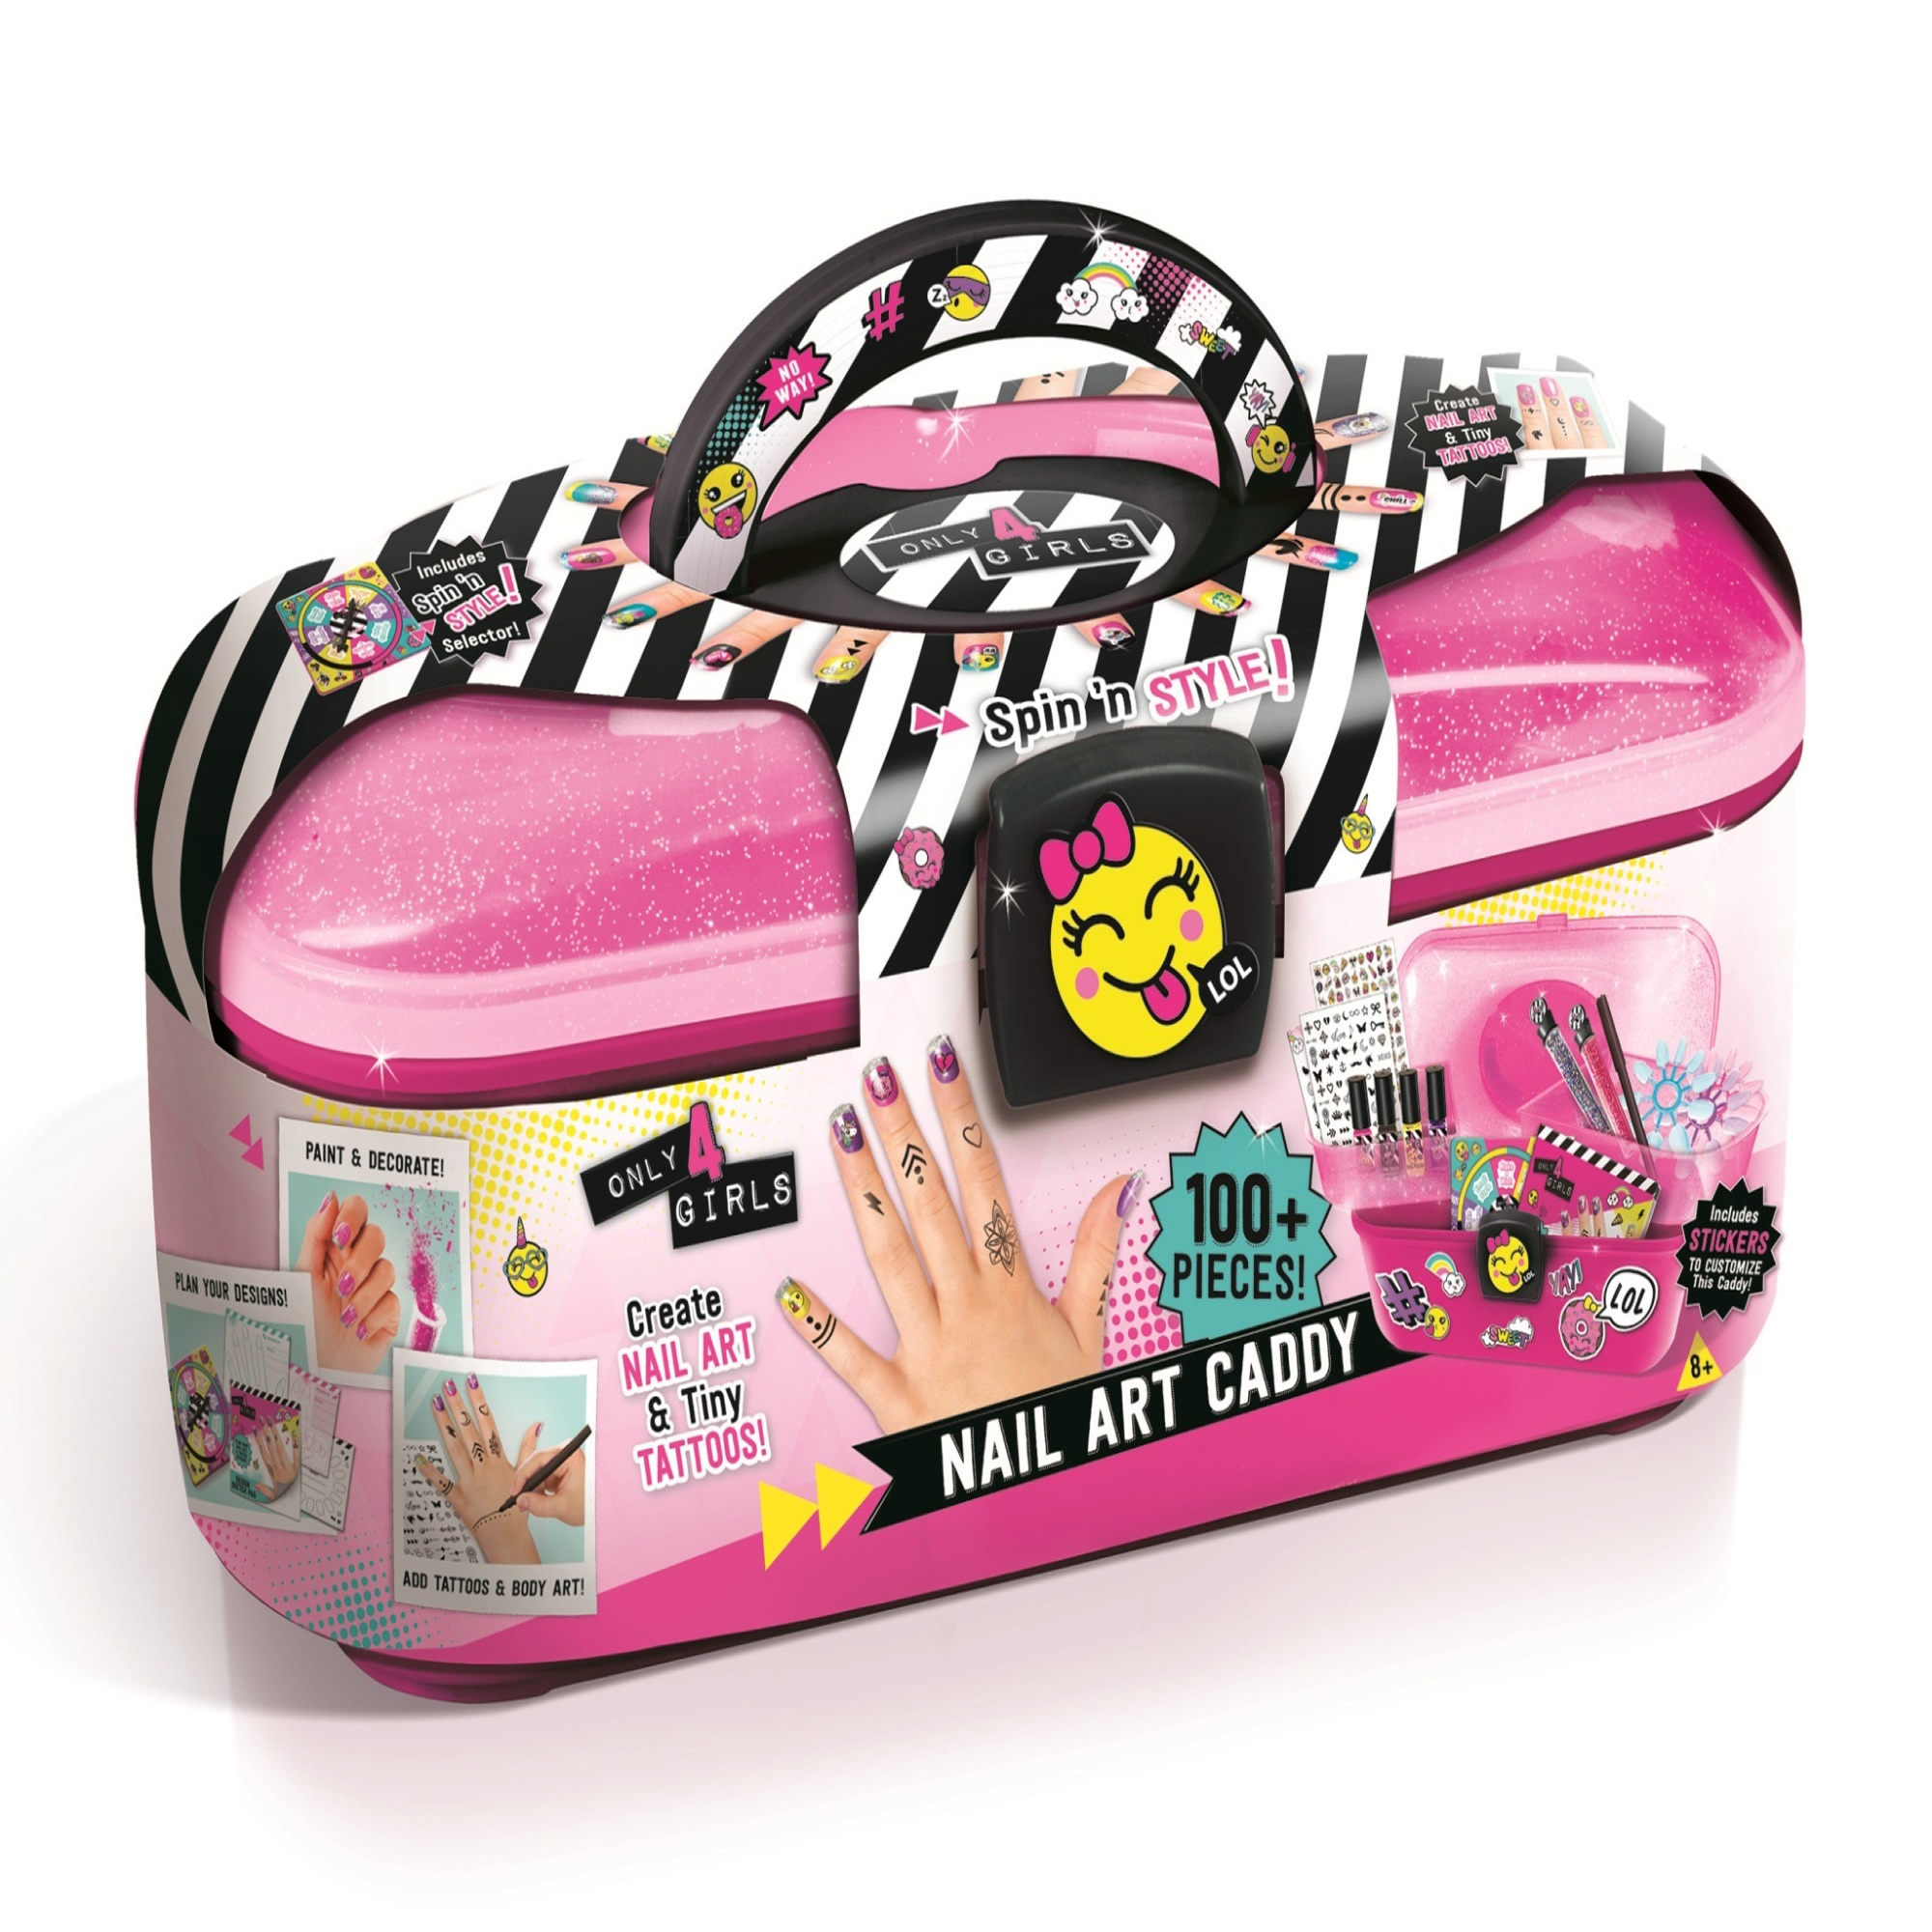 Only 4 Girls Nail Art Caddy Set by License2Play